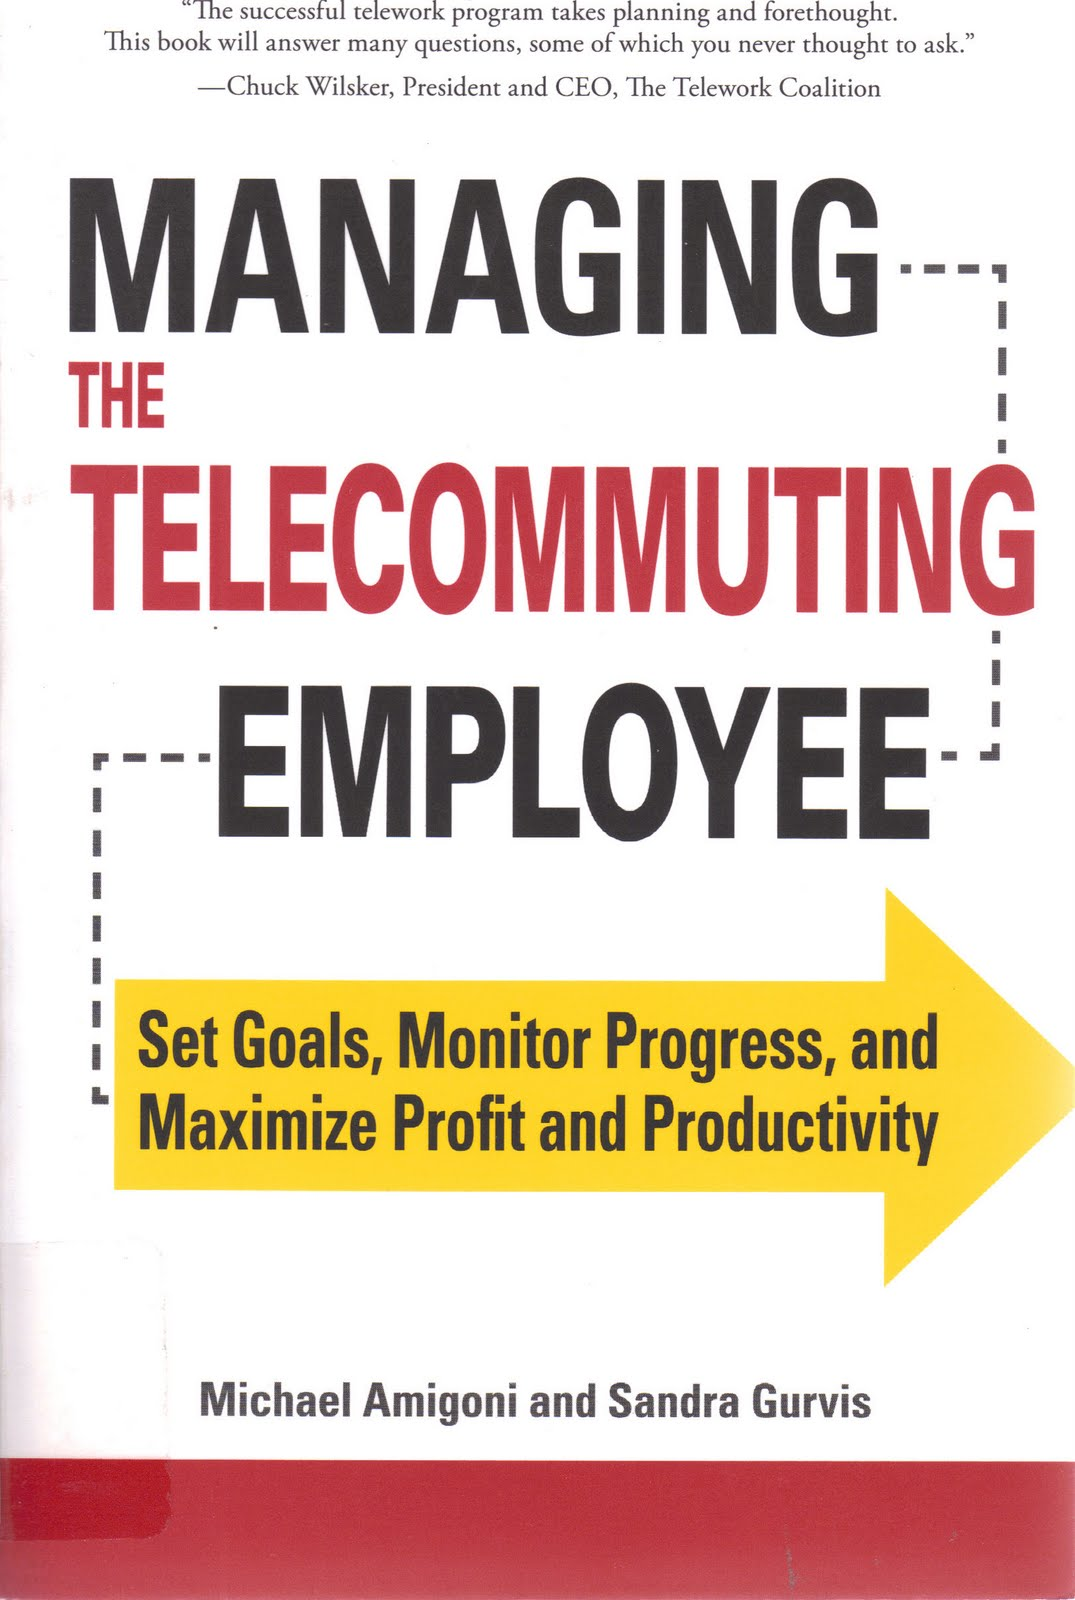 telecommuting and employees We've culled through some of the data to offer a few of the most interesting stats about remote work, as seen below 1 remote work can increase worker productivity it's hard to dispute: companies and at-home employees alike say remote work is a boon to productivity distractions like water cooler gossip, impromptu meetings, and loud.